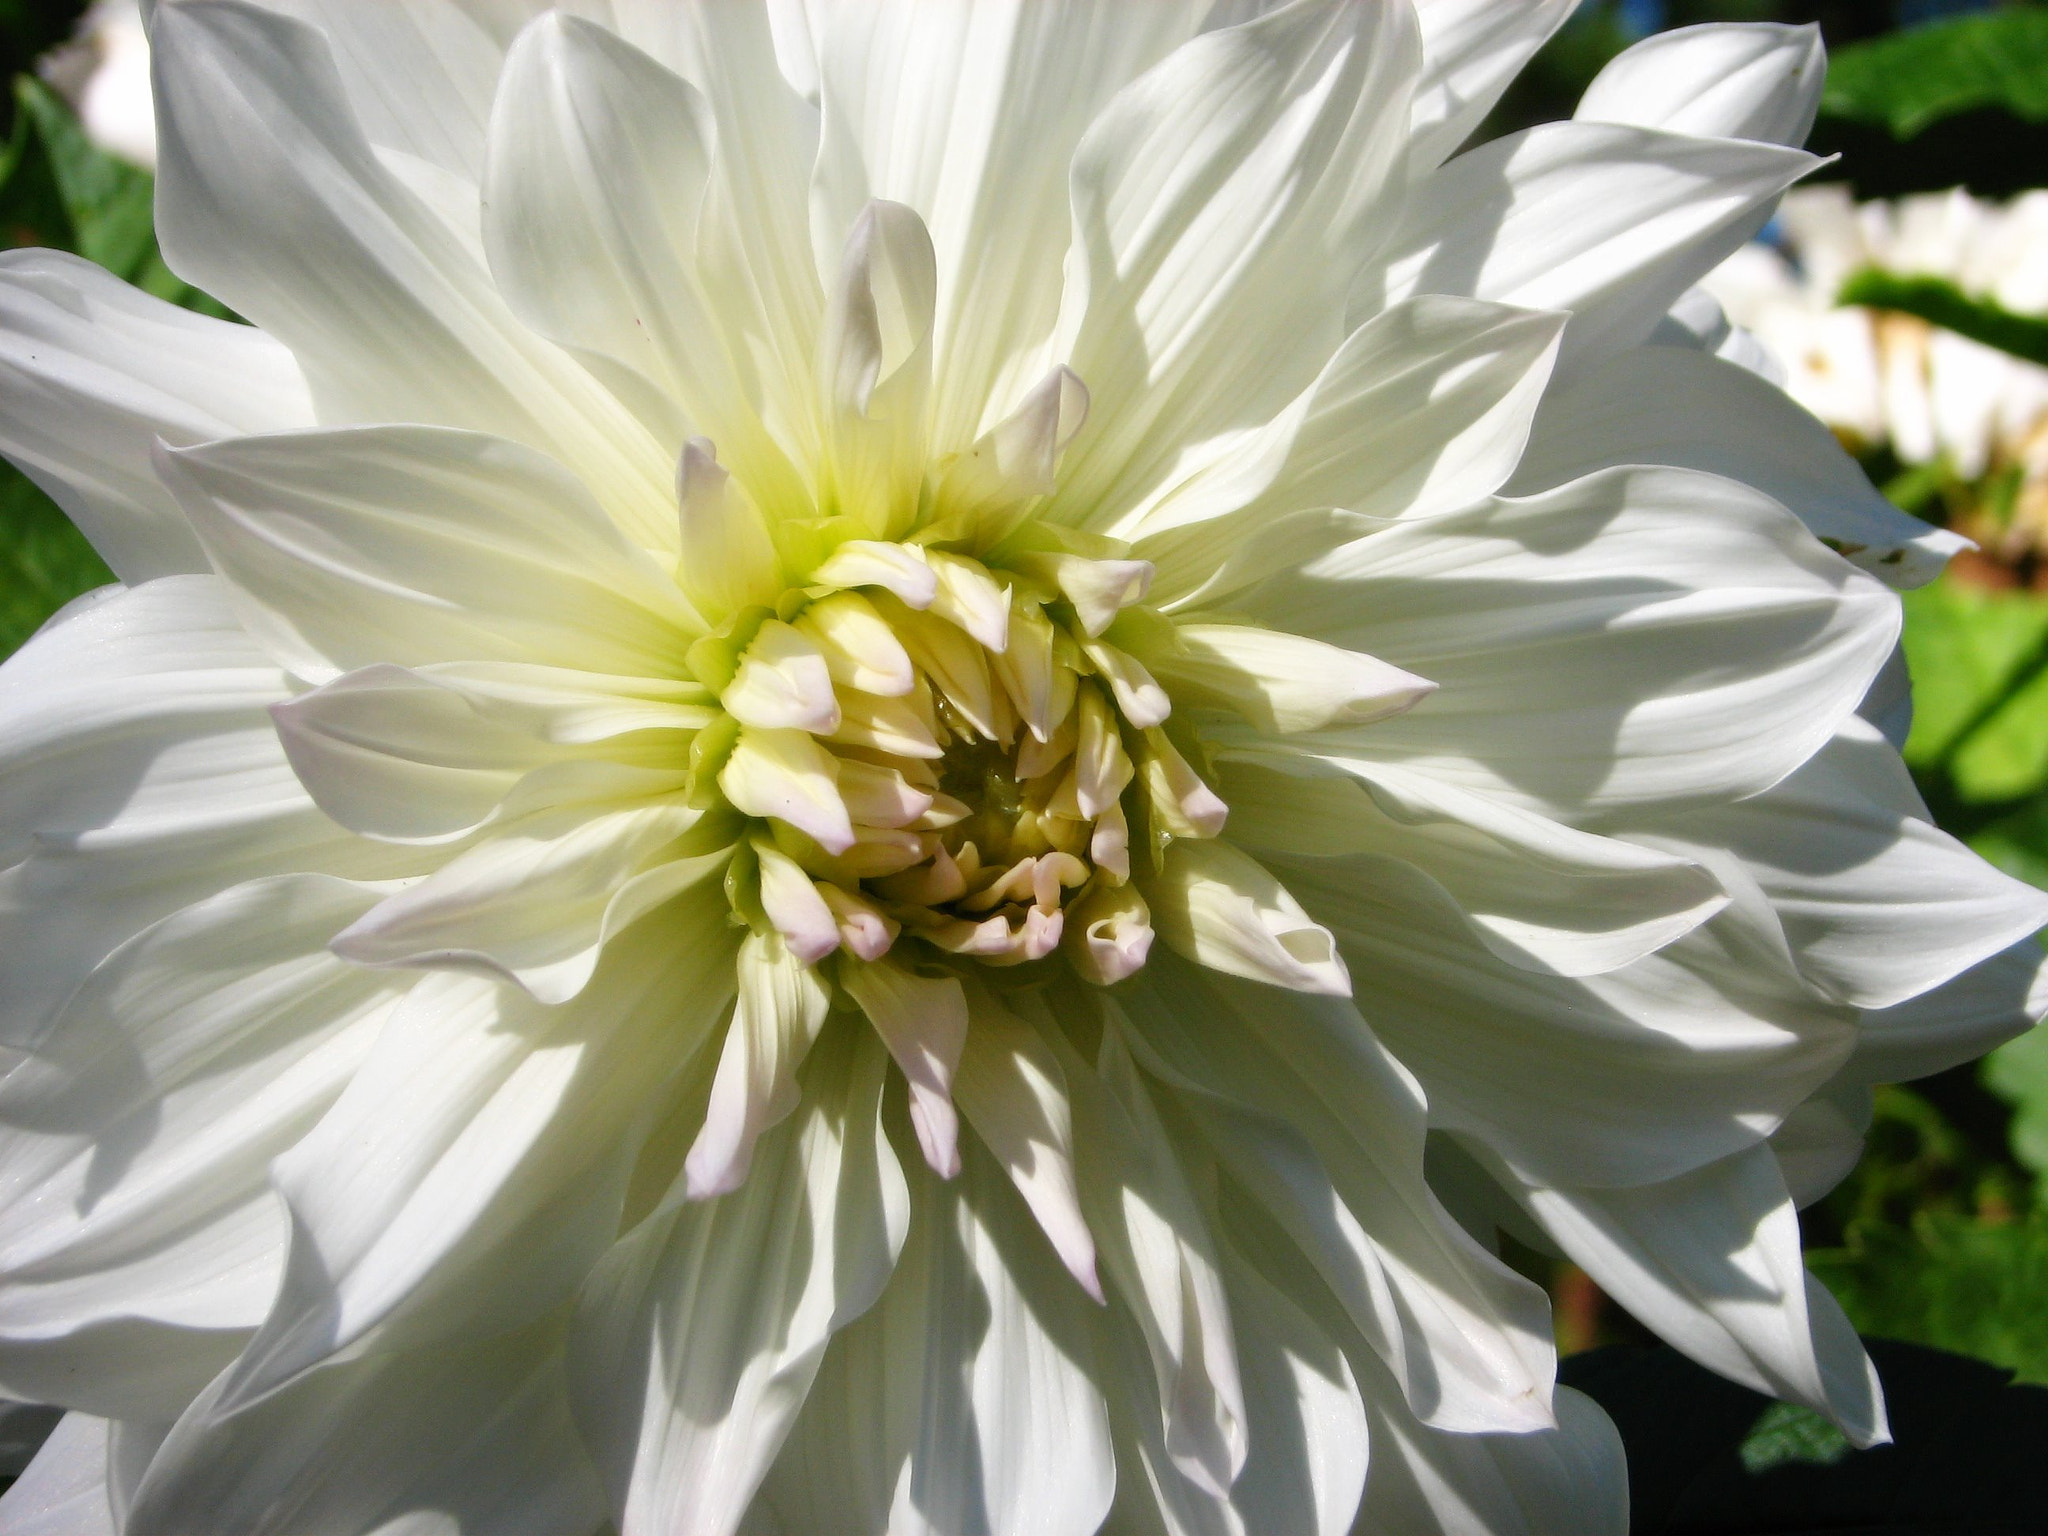 Photograph White Dahlia by Teresa OBrian on 500px